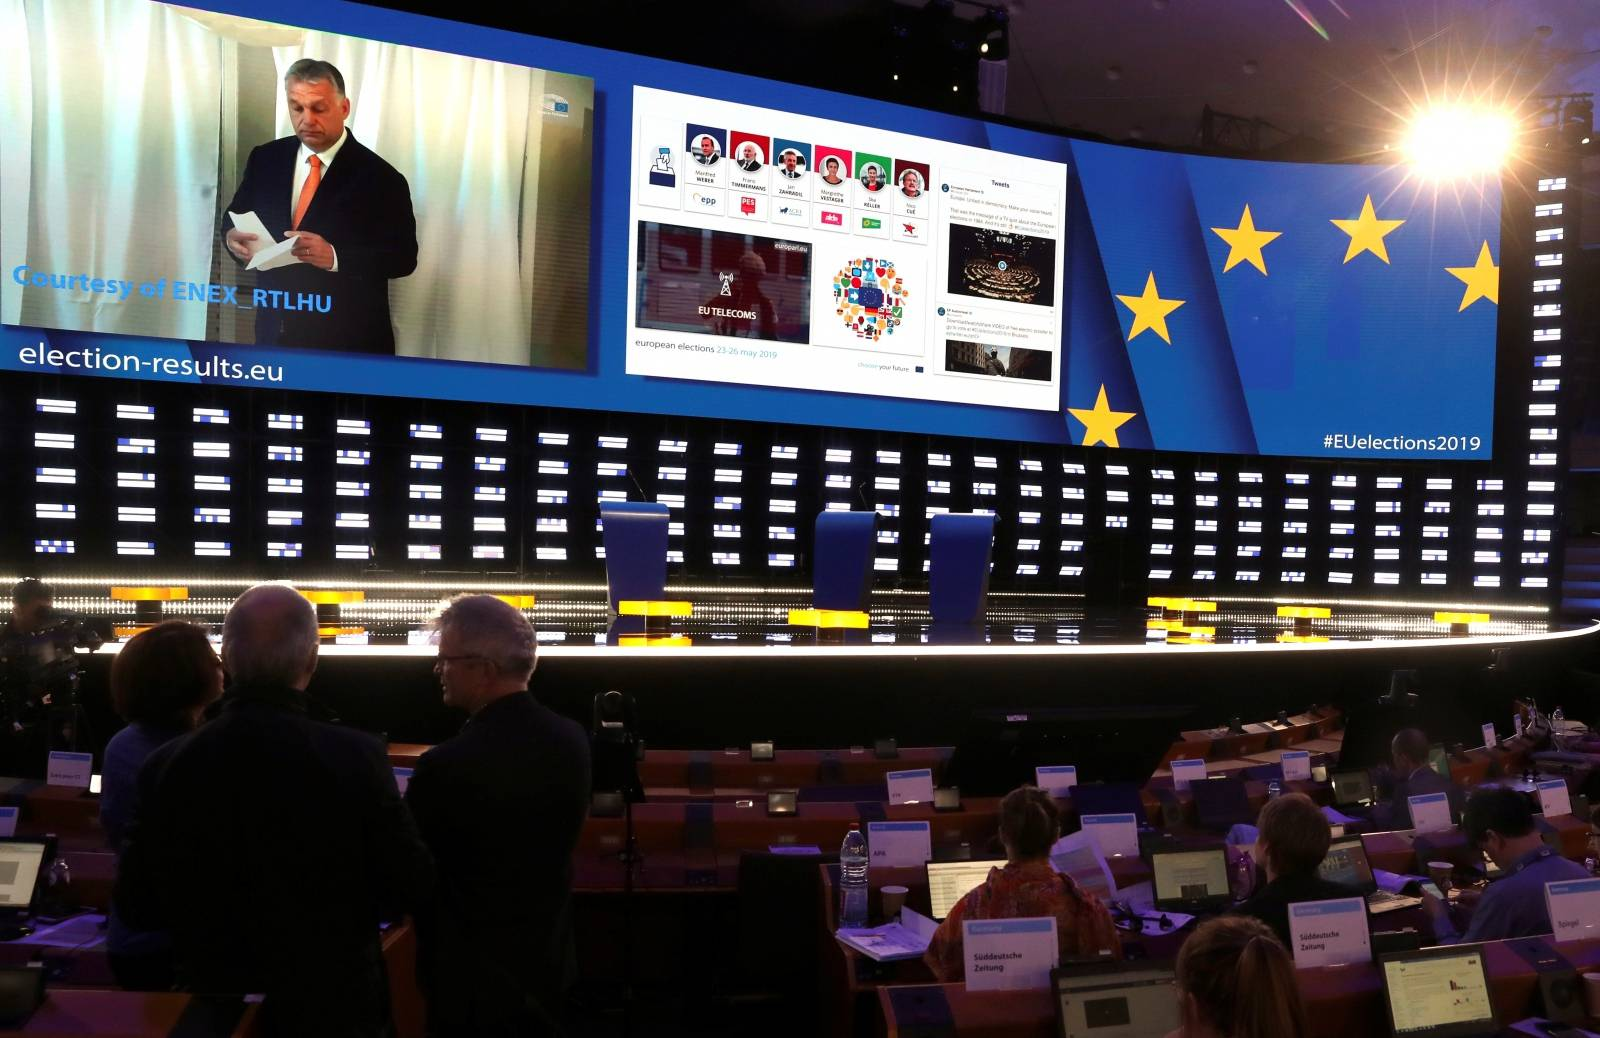 Election night at the European Parliament in Brussels